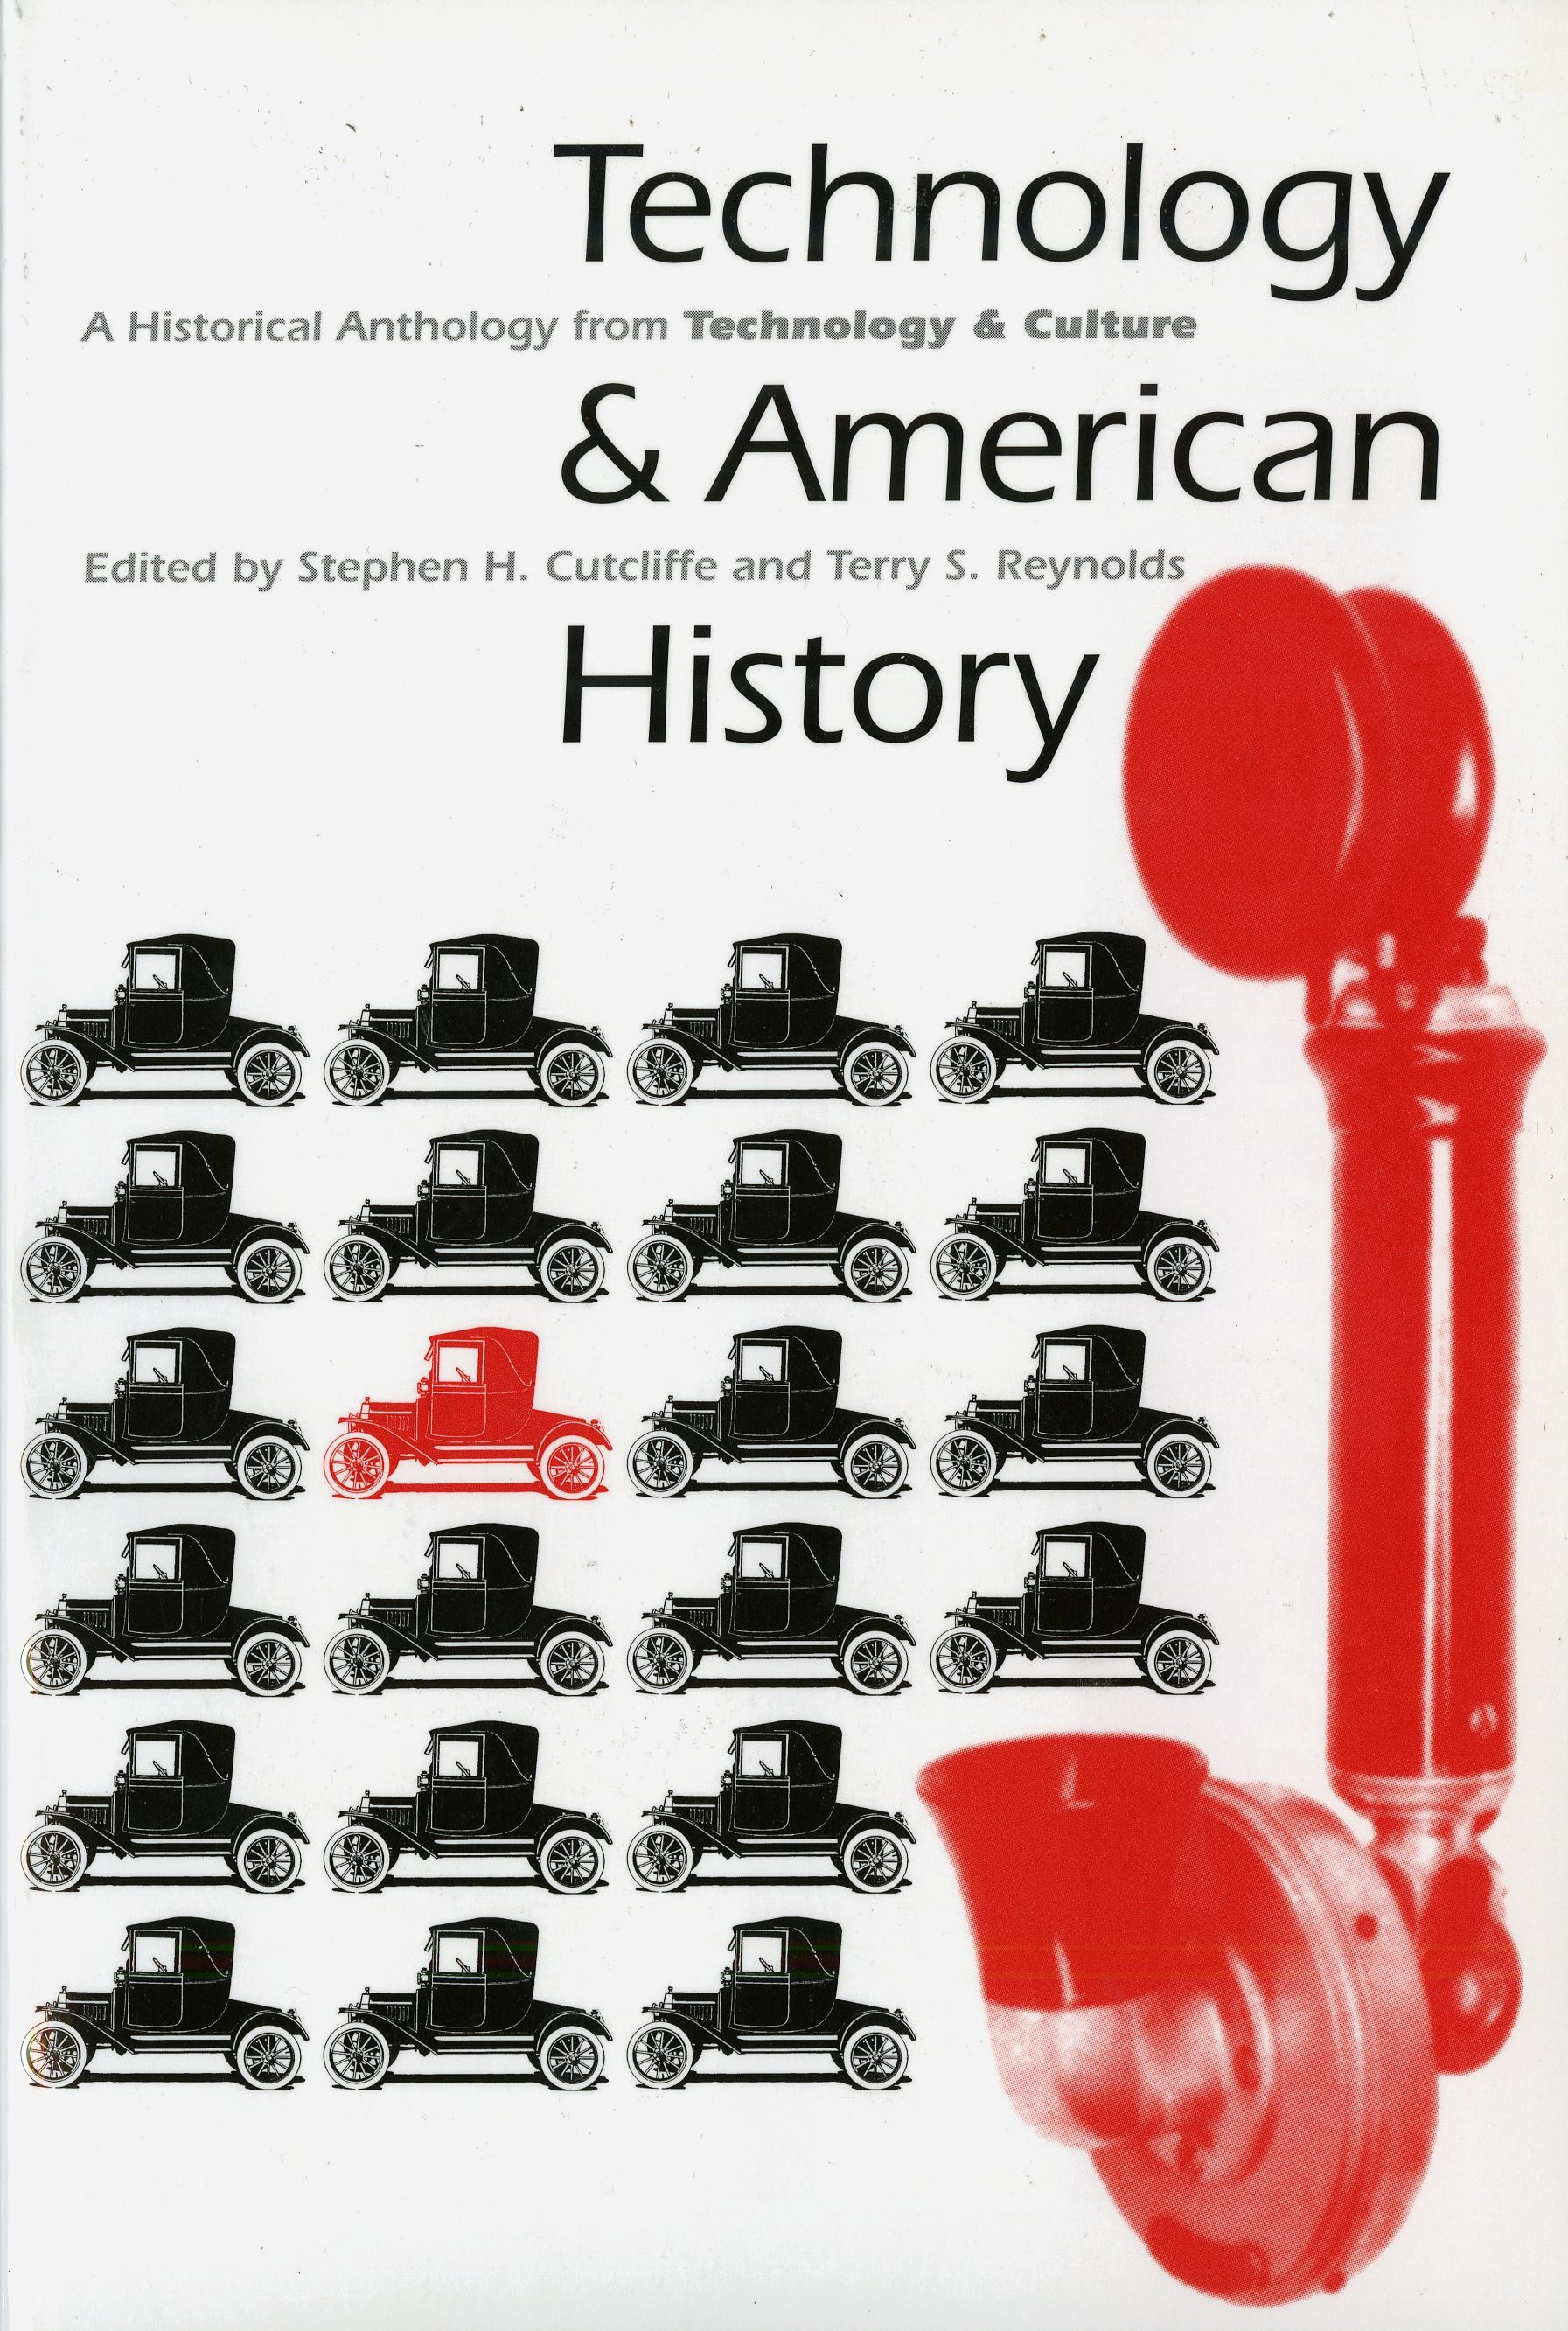 What is a good American history topic that happened from 1870-1930?